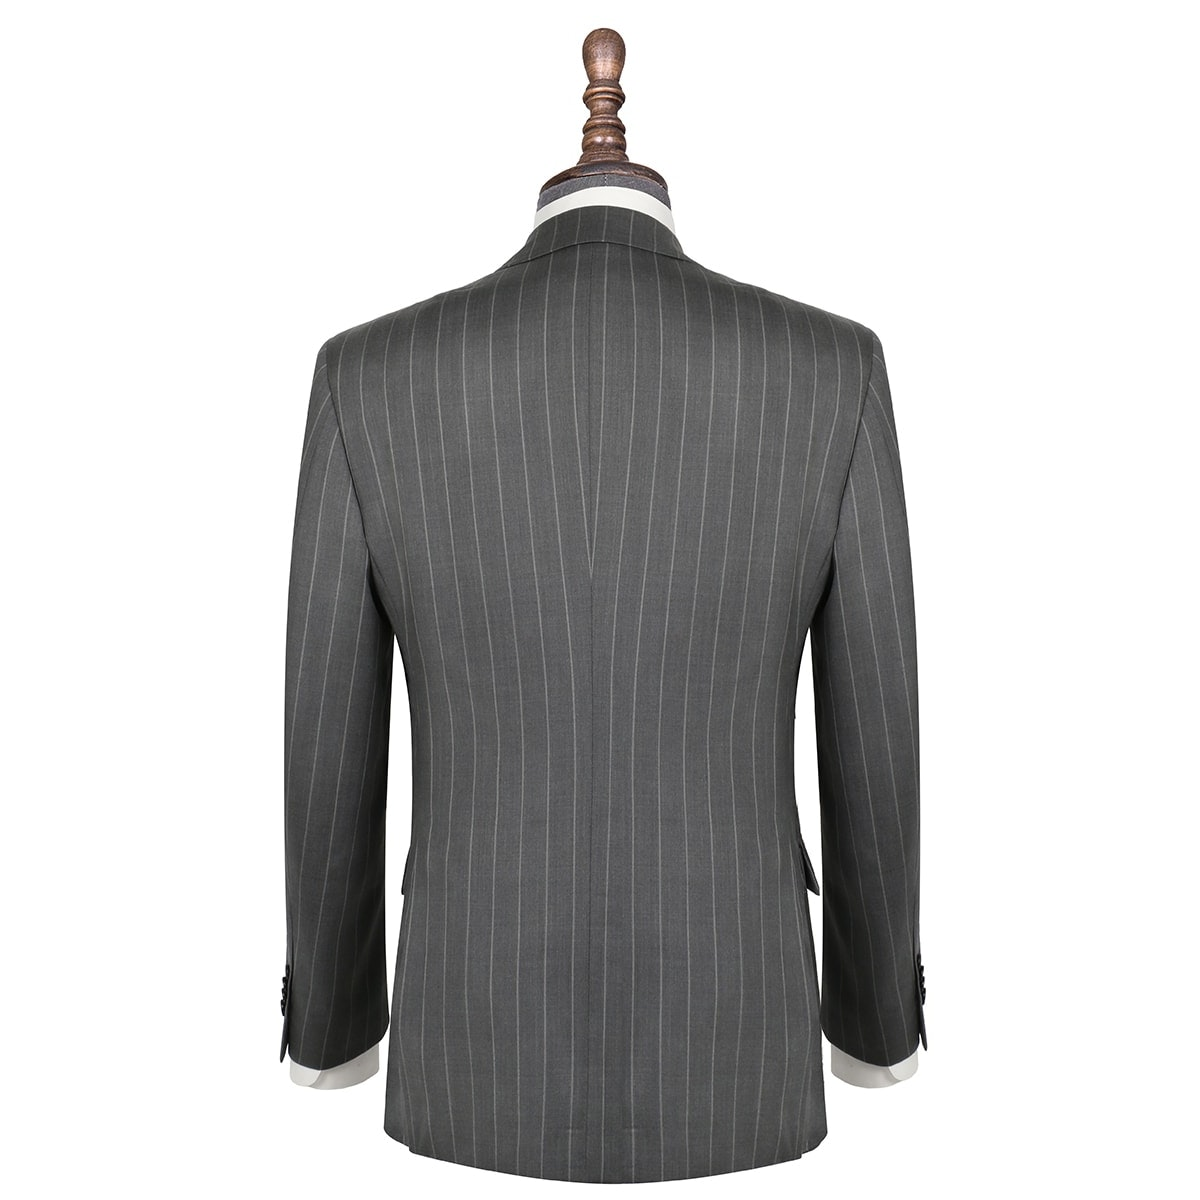 InStitchu Collection The Winton Grey Pinstripe Wool Jacket